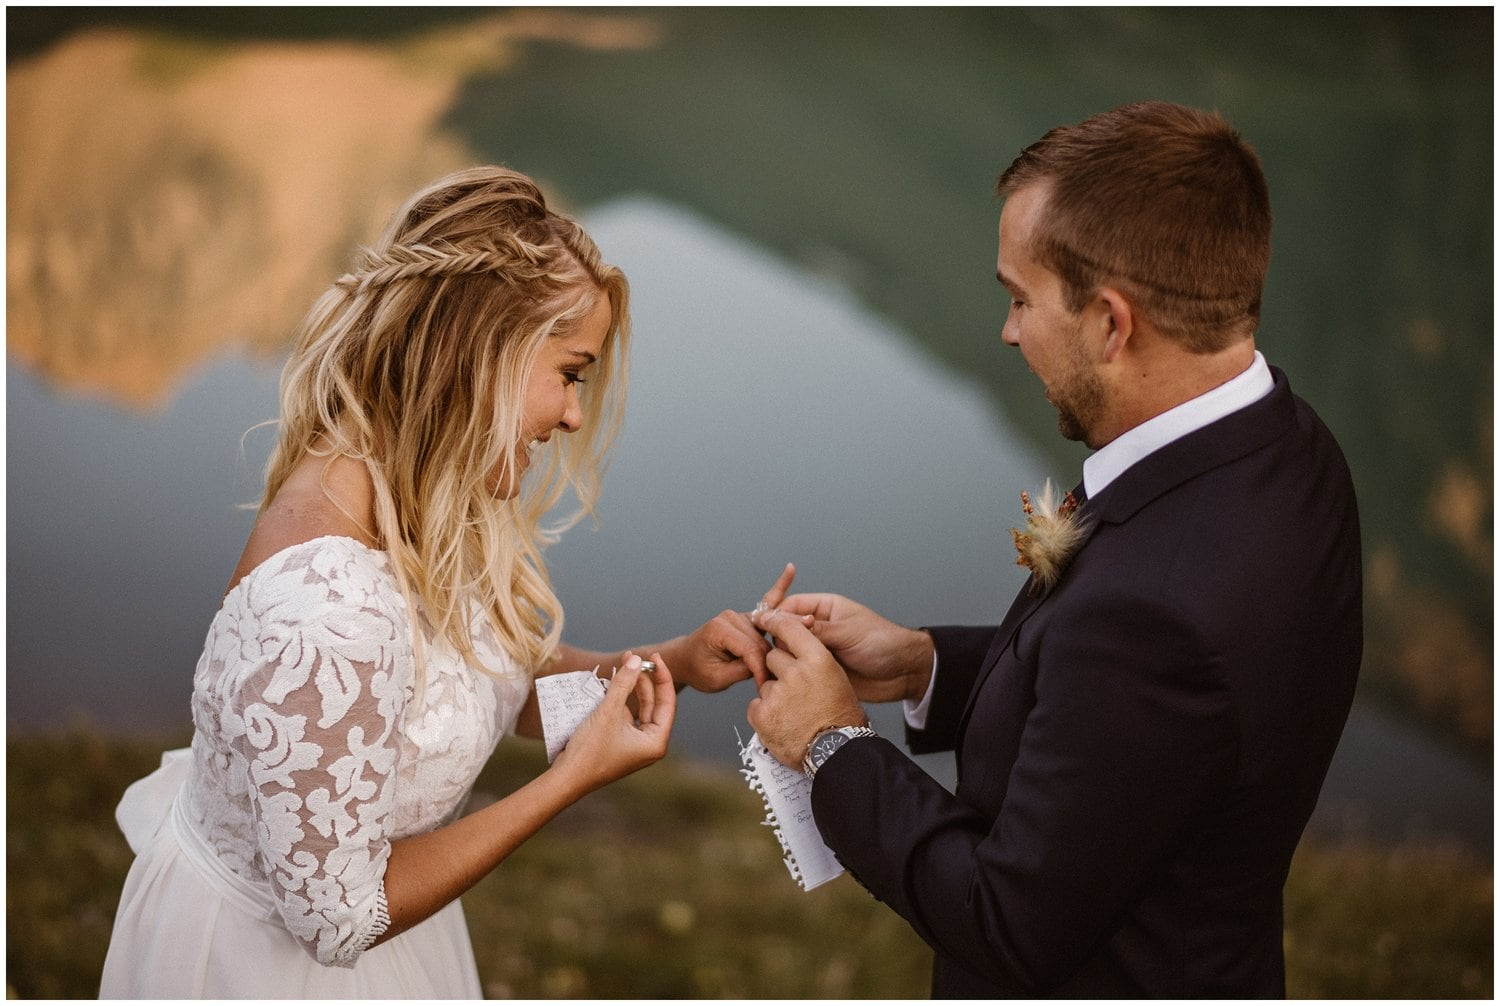 Groom puts ring on bride during their elopement ceremony.